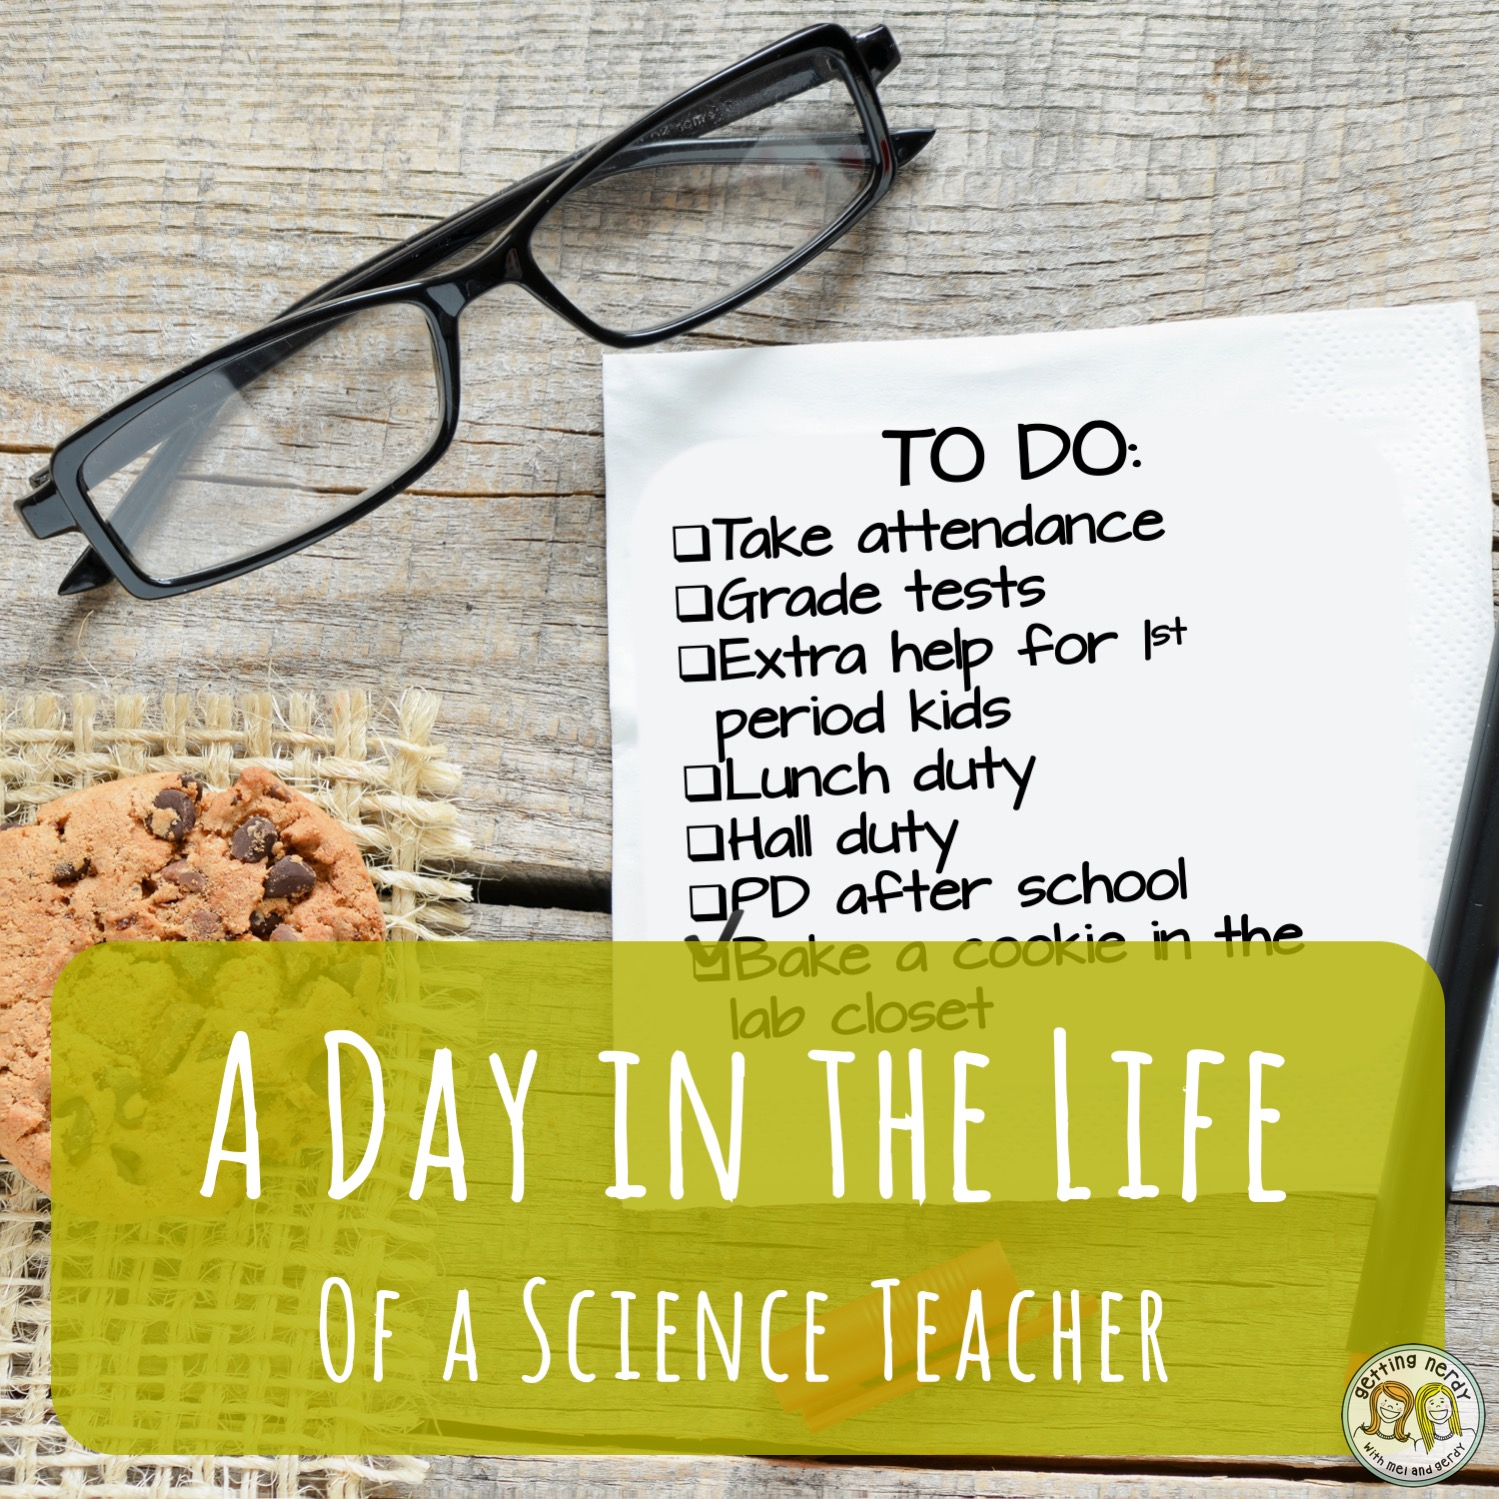 A Day in the Life of A Science Teacher